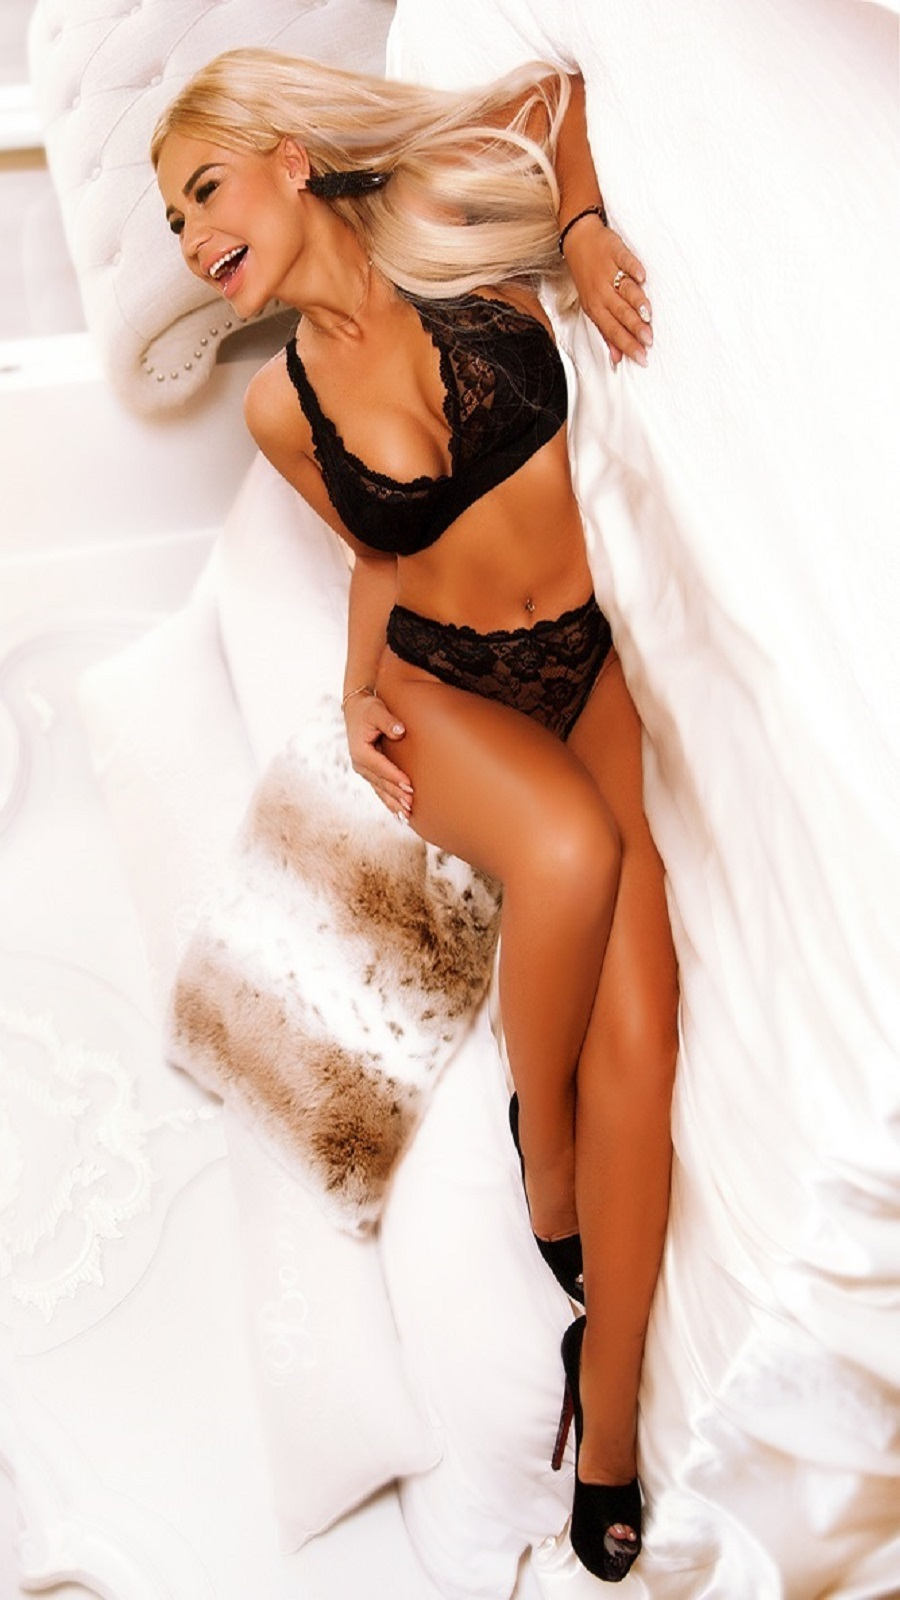 If you are looking for the perfect companion tonight give us a call on 07412621234 to book Shona for the best night of your life.